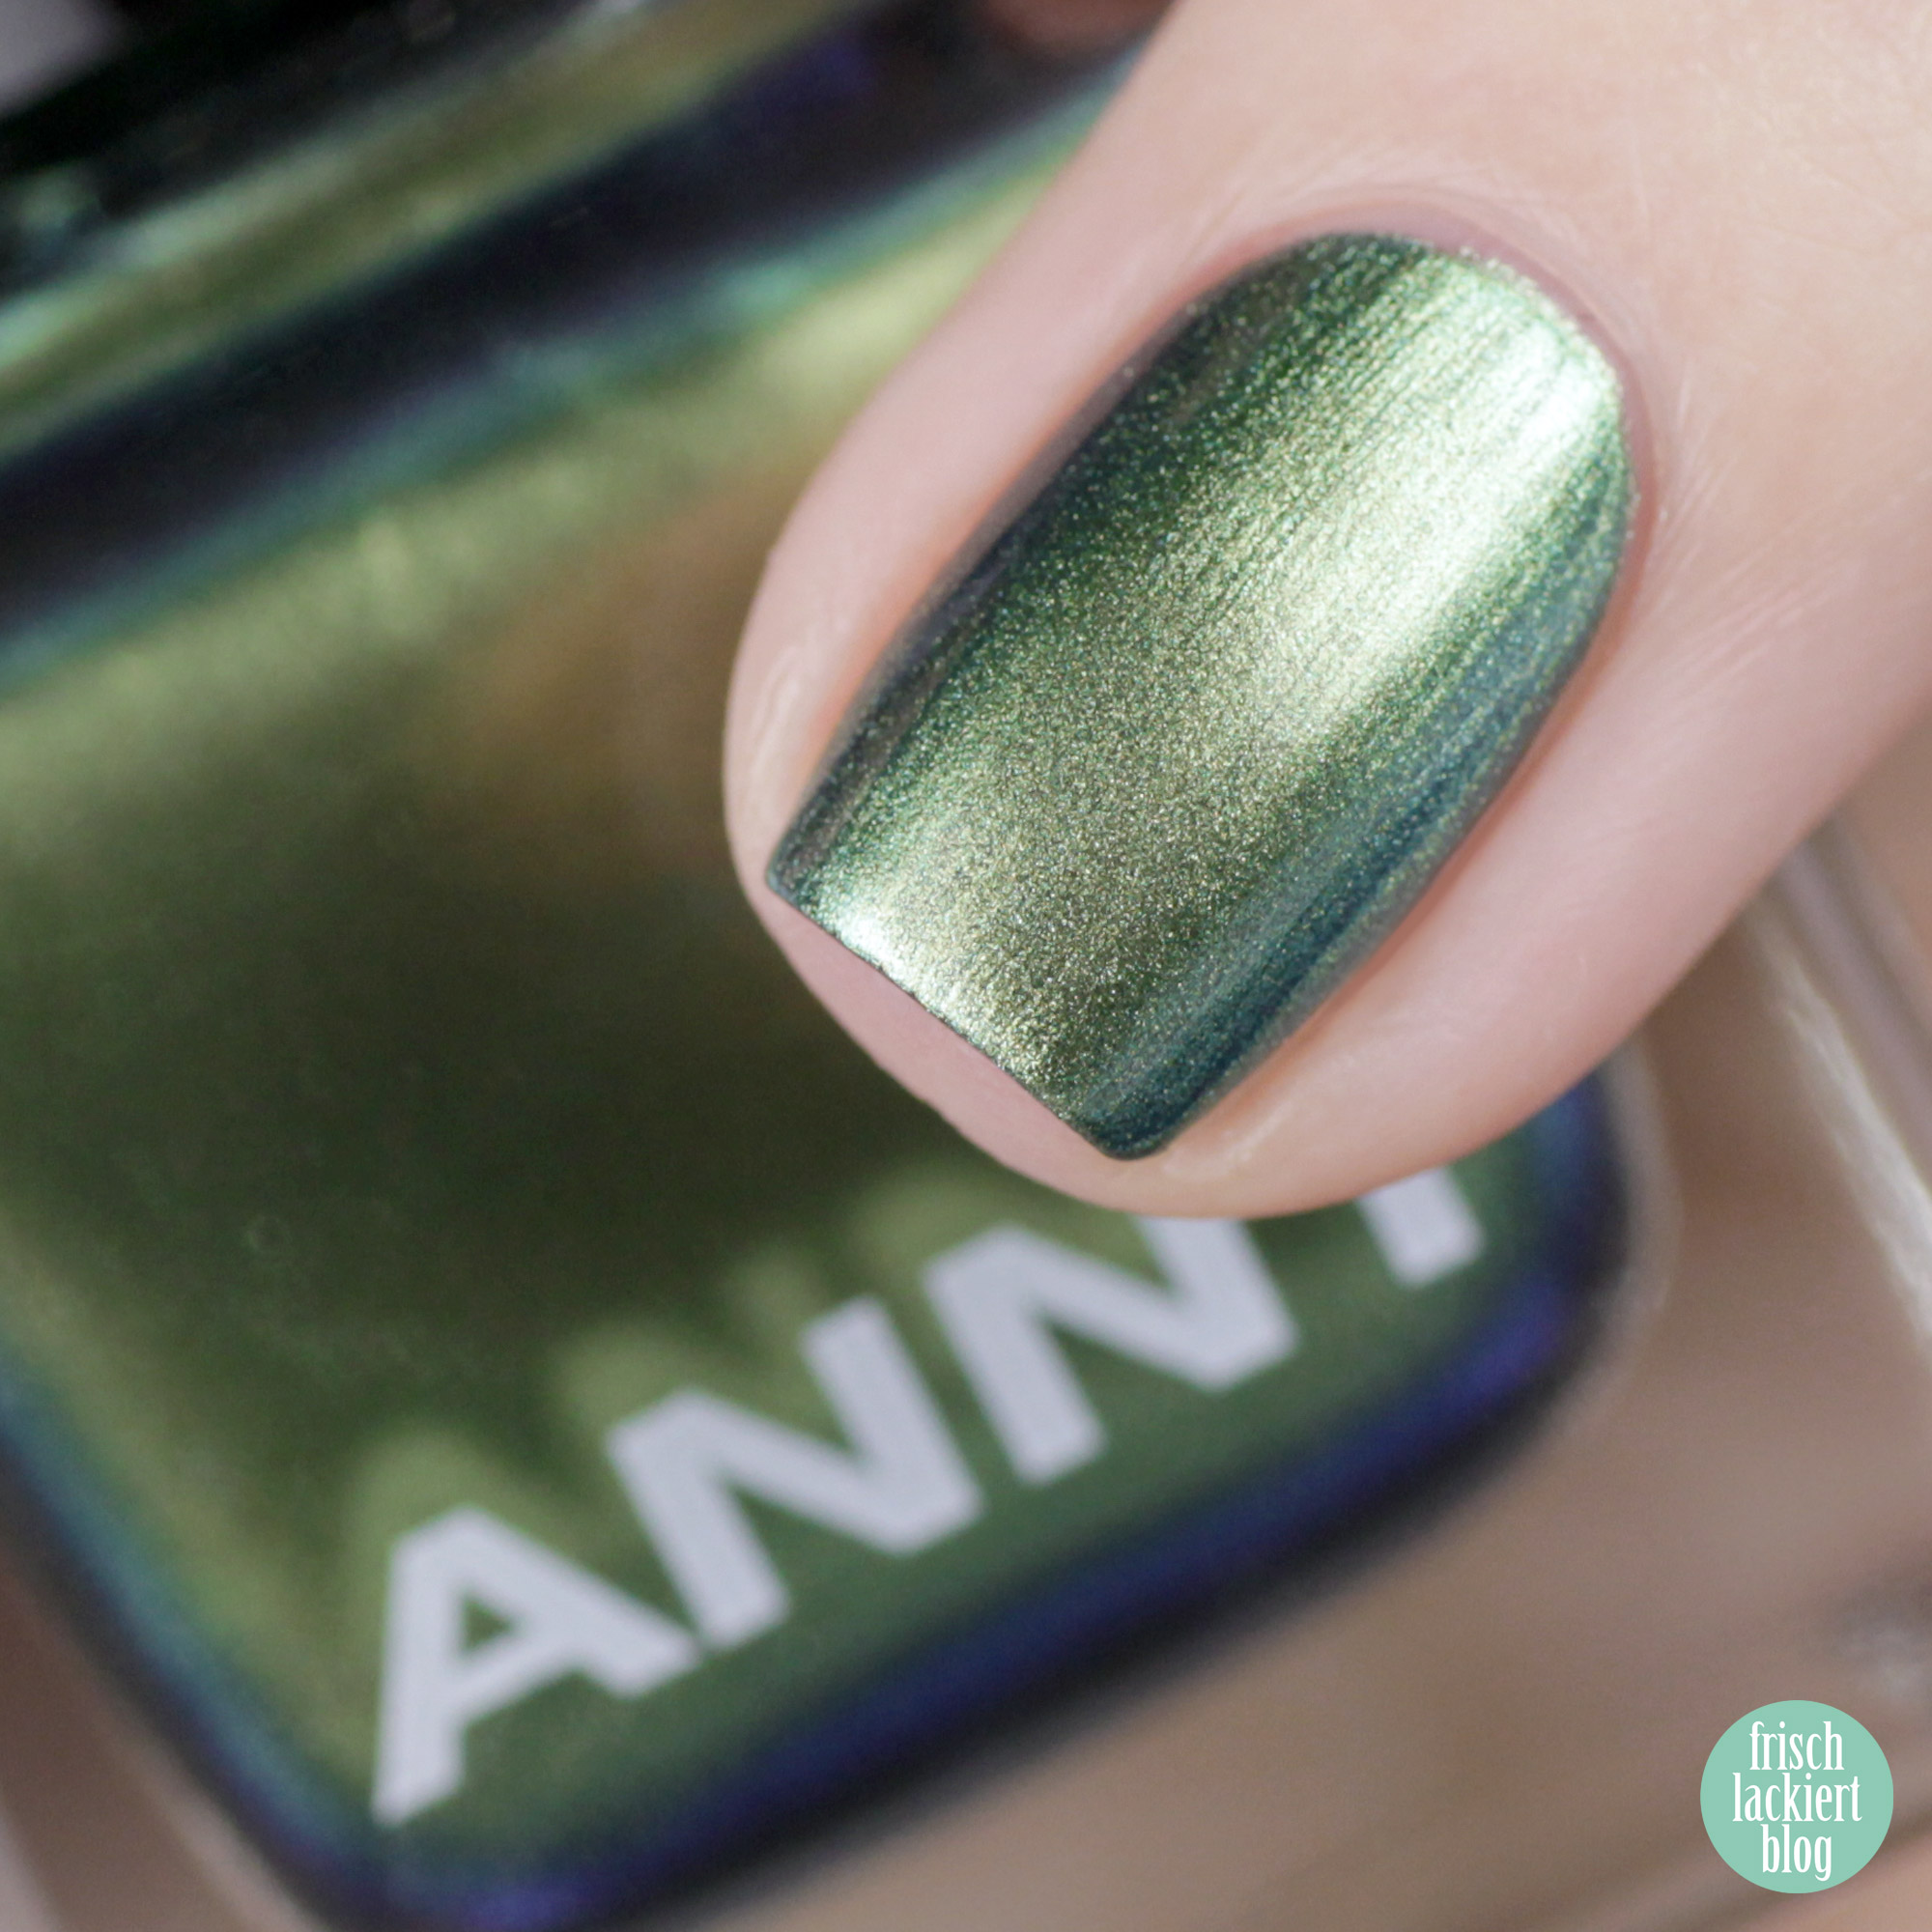 ANNY Holo it´s ANNY Nagellack Kollektion - miss undercover – swatch by frischlackiert